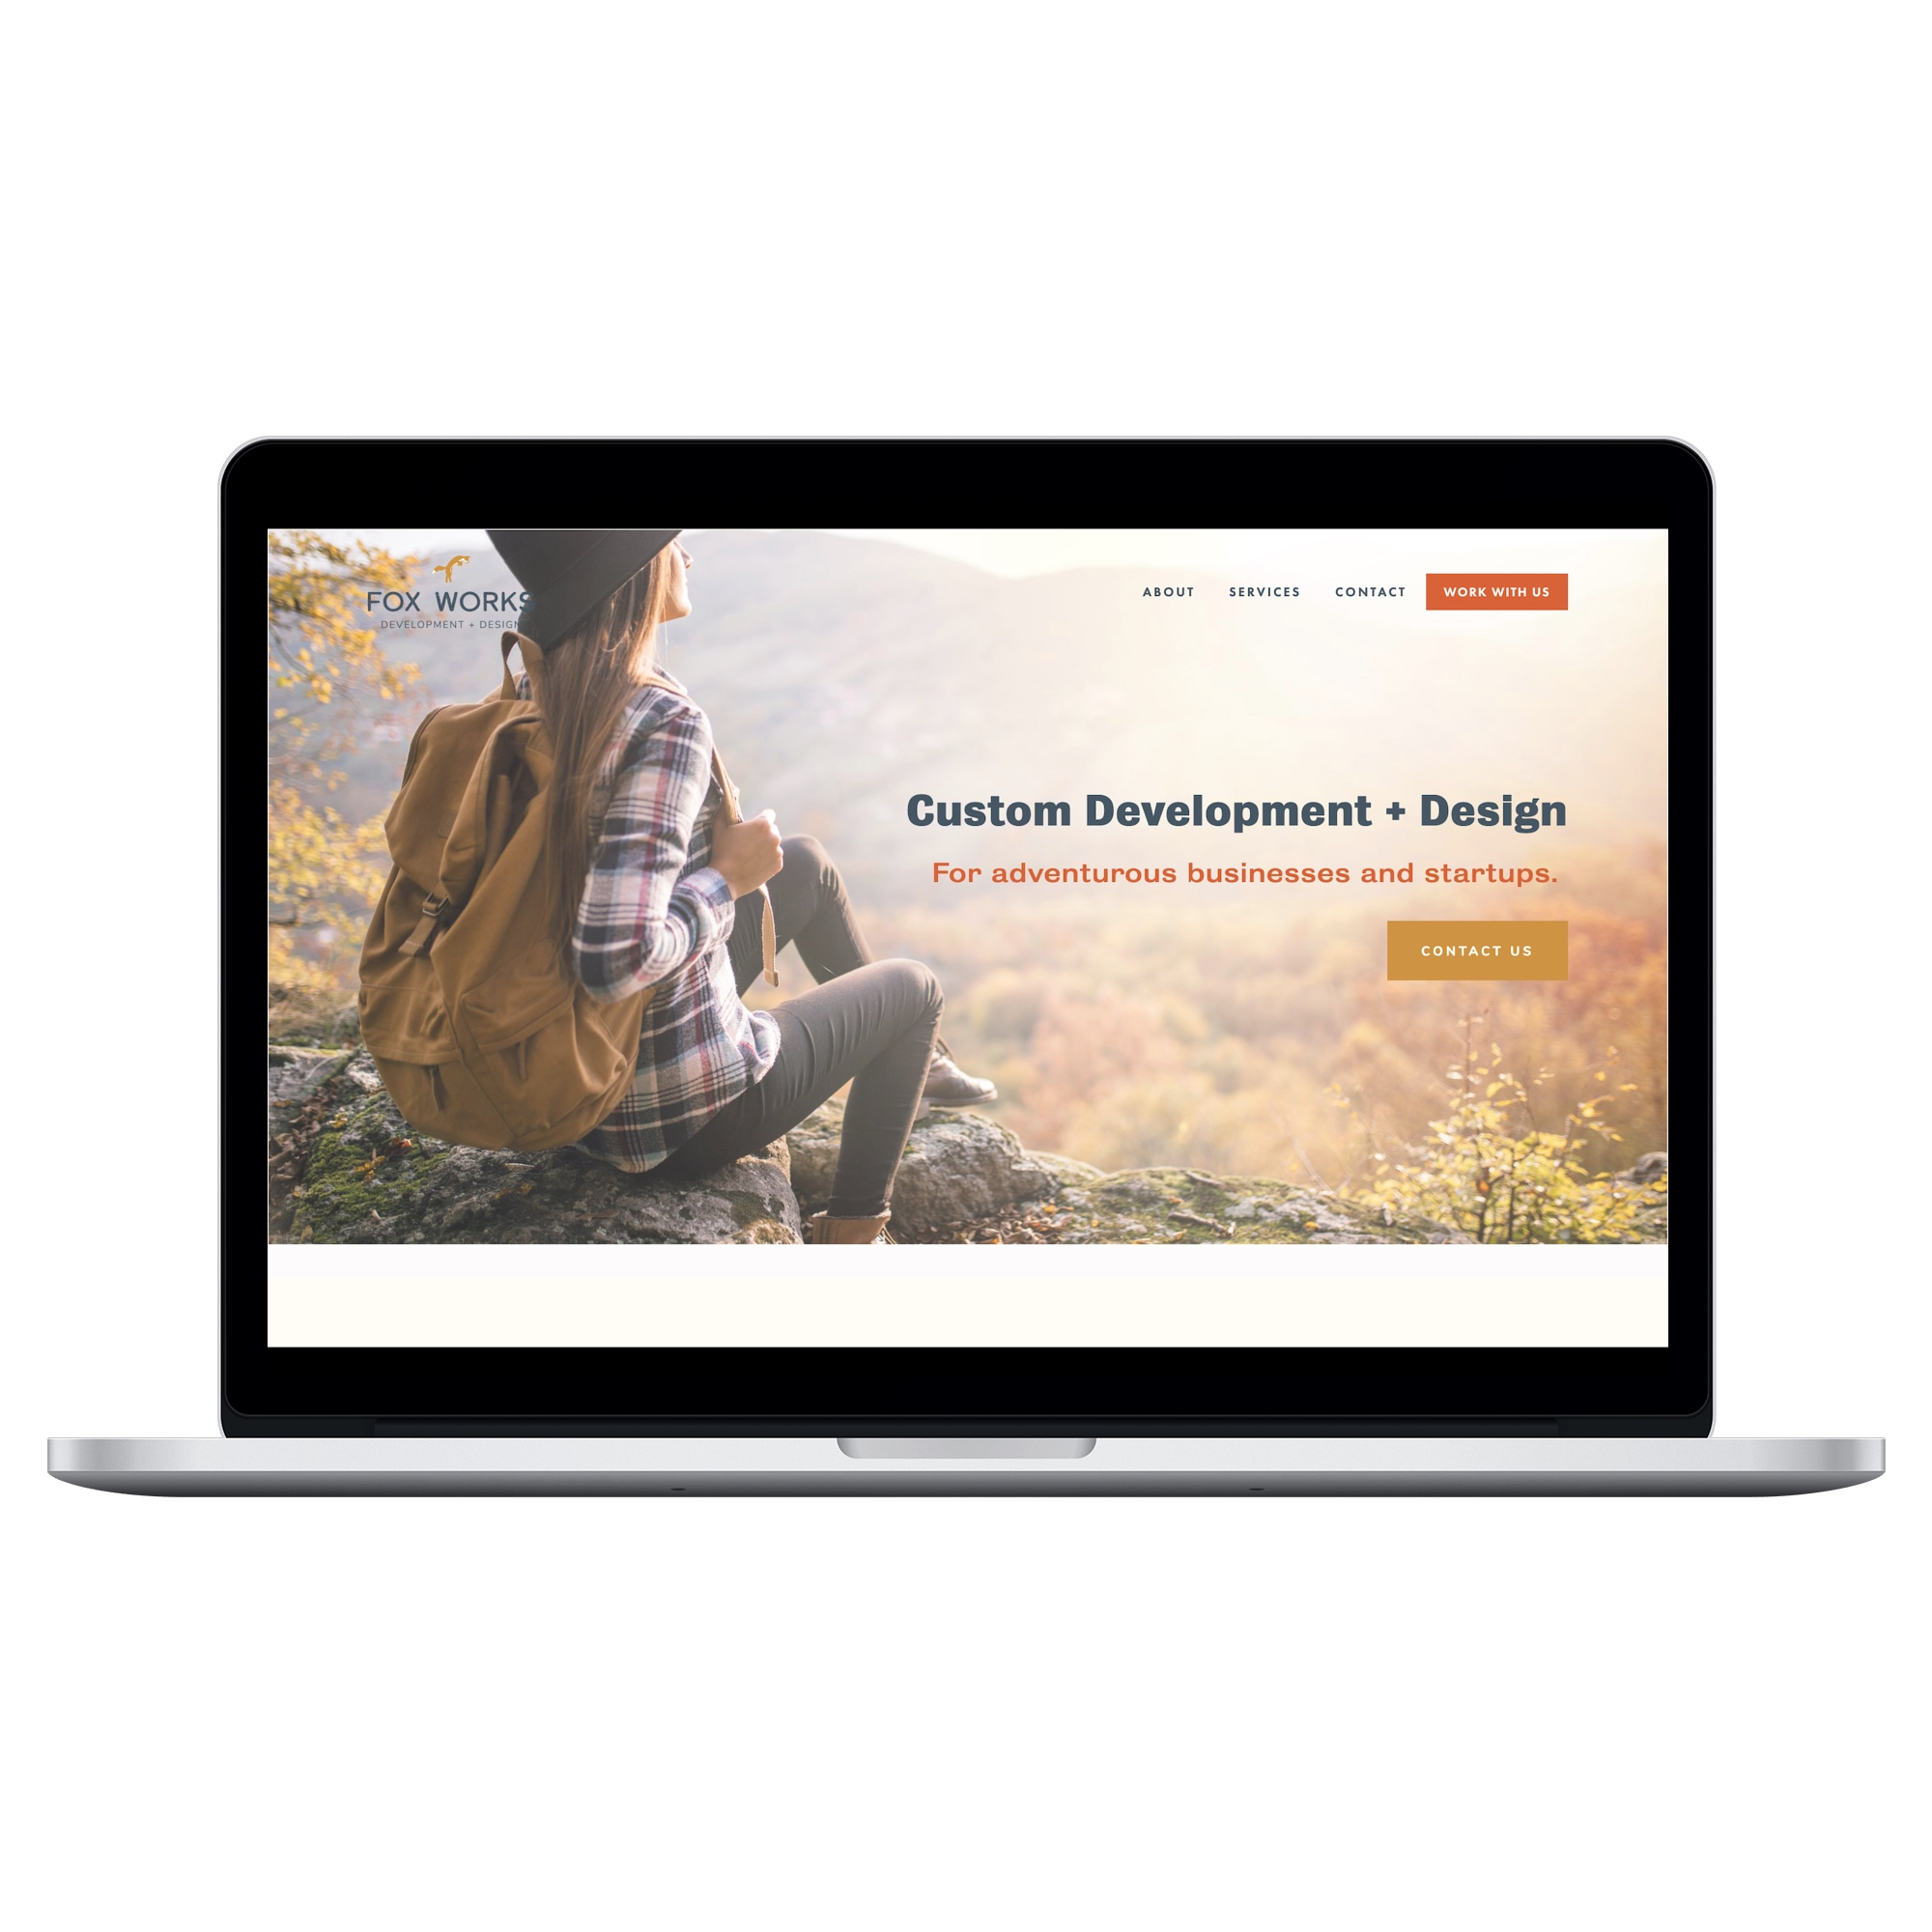 Web + Brand + Copy - For creative small business, Fox Works